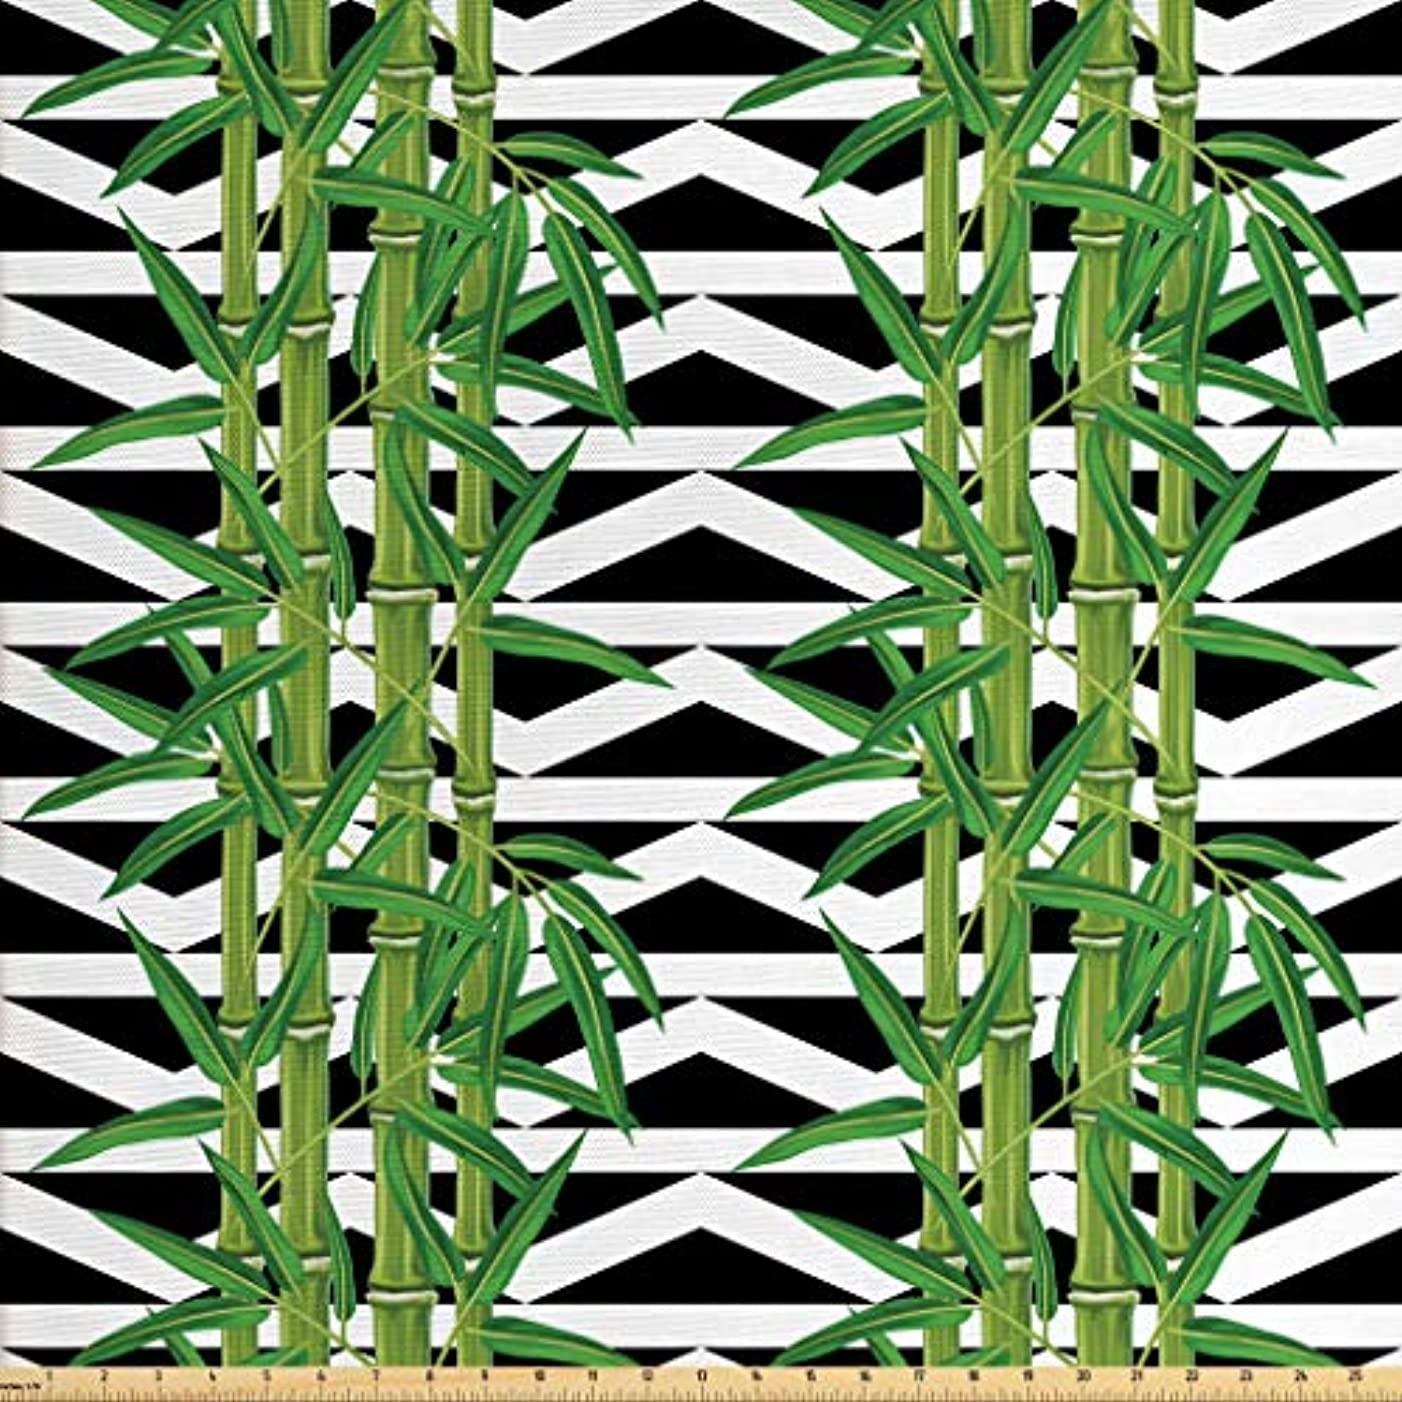 Lunarable Bamboo Fabric by The Yard, Japanese Jungle Eco Theme Tropical Nature Growth with Geometric Backdrop, Decorative Fabric for Upholstery and Home Accents, 2 Yards, Black White Green